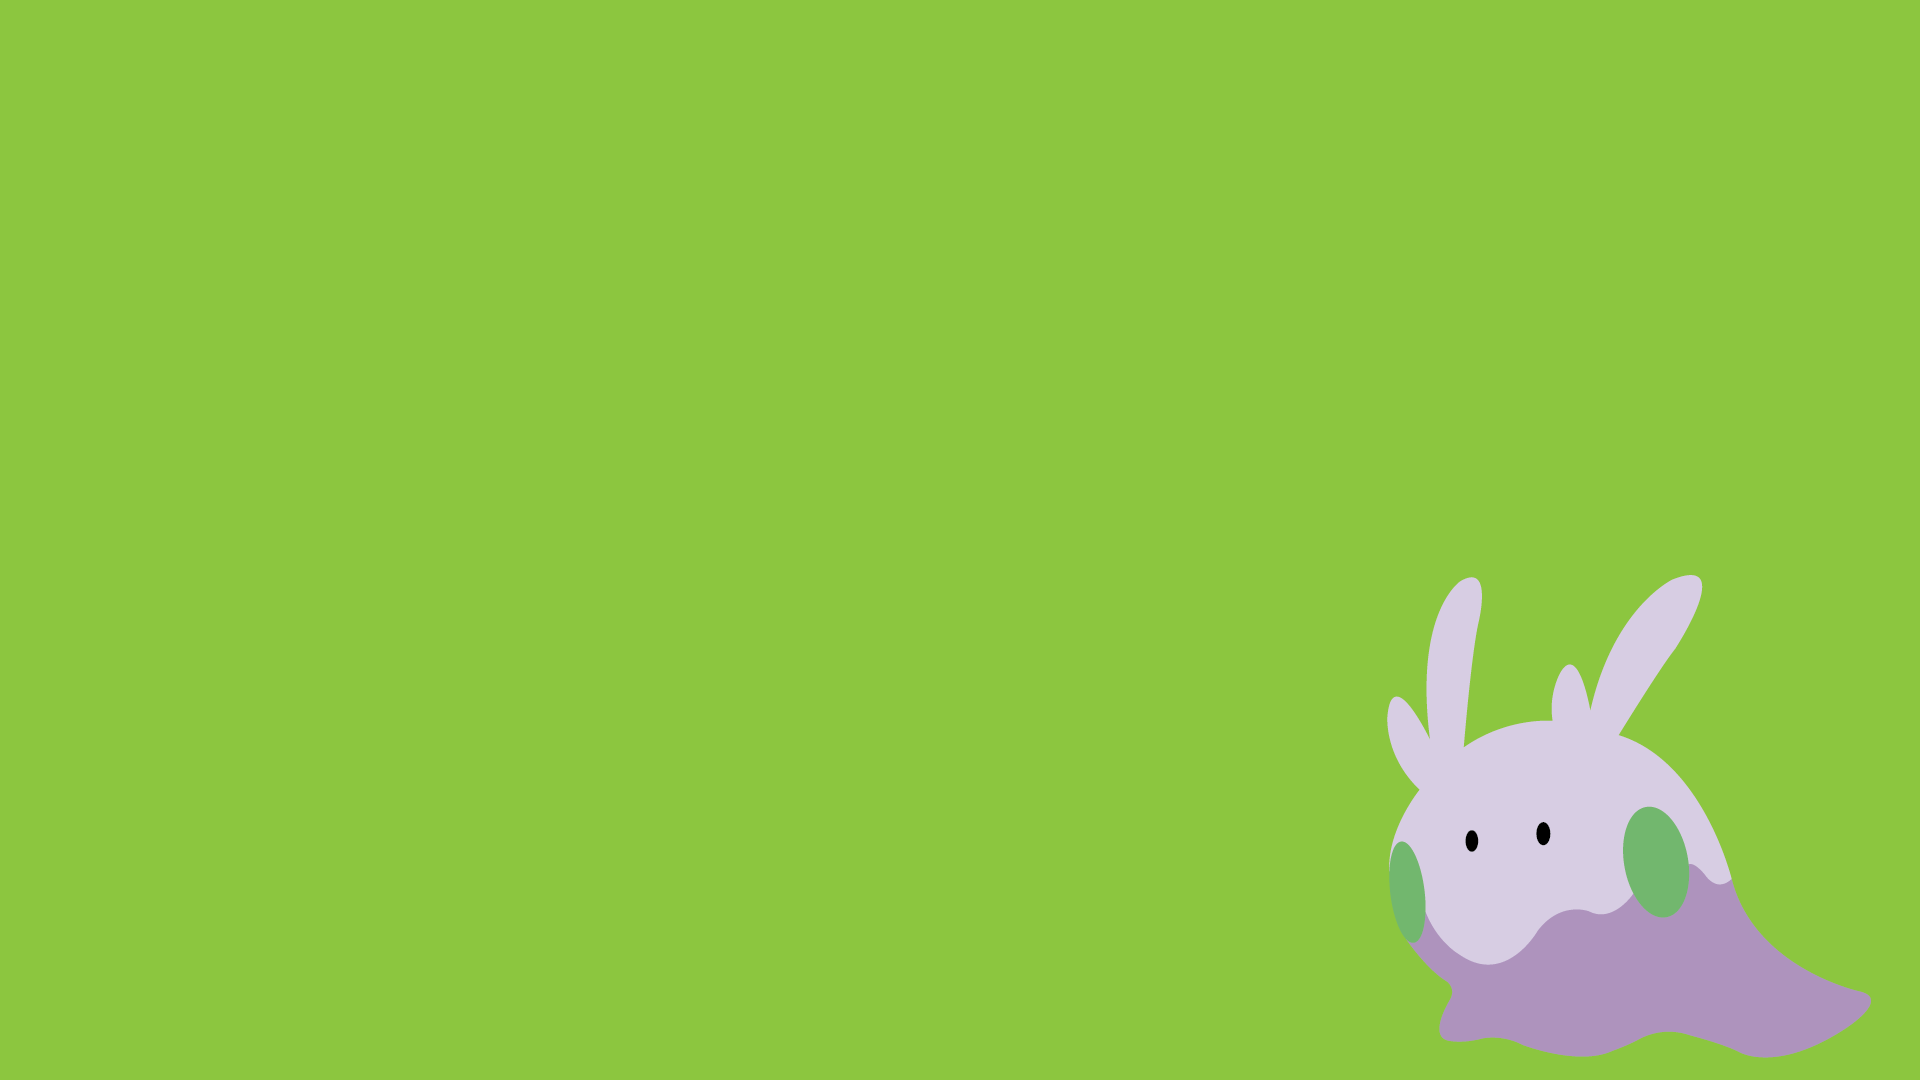 Goomy Wallpaper : pokemon